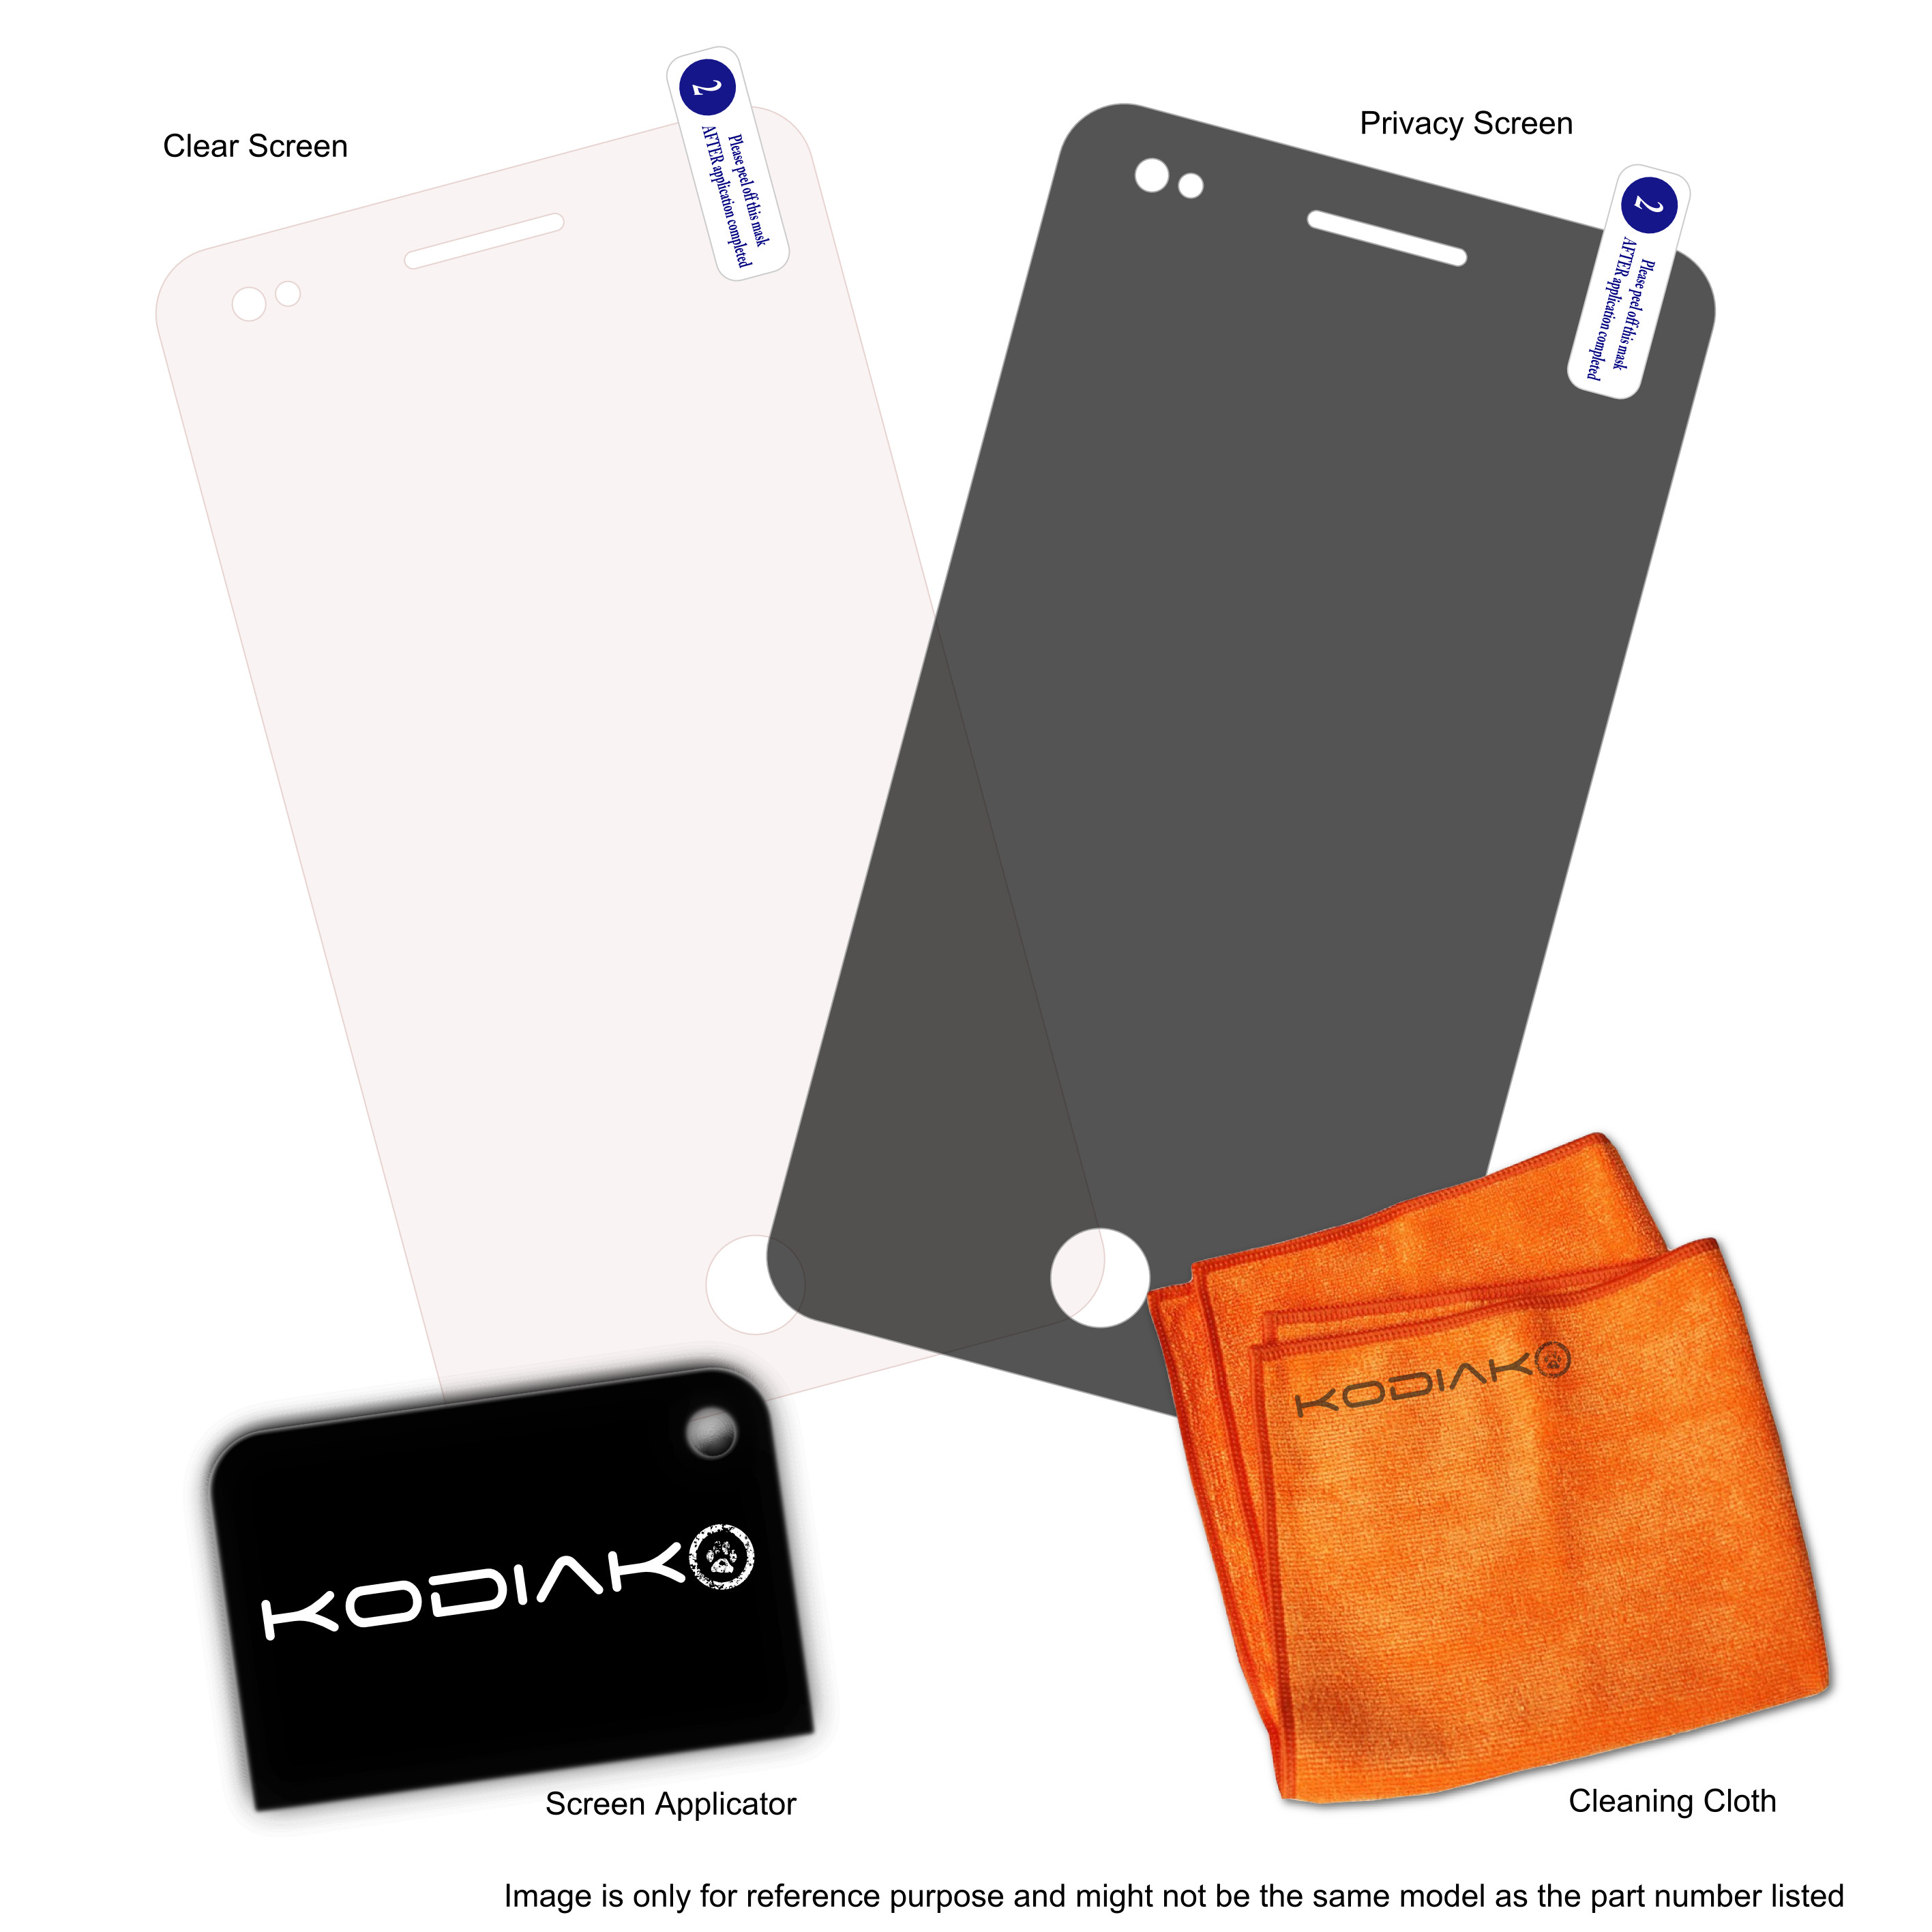 original-kodiak-screen-protector-sony-ericsson-xperia-play-iprotect-2-package-clear-privacy